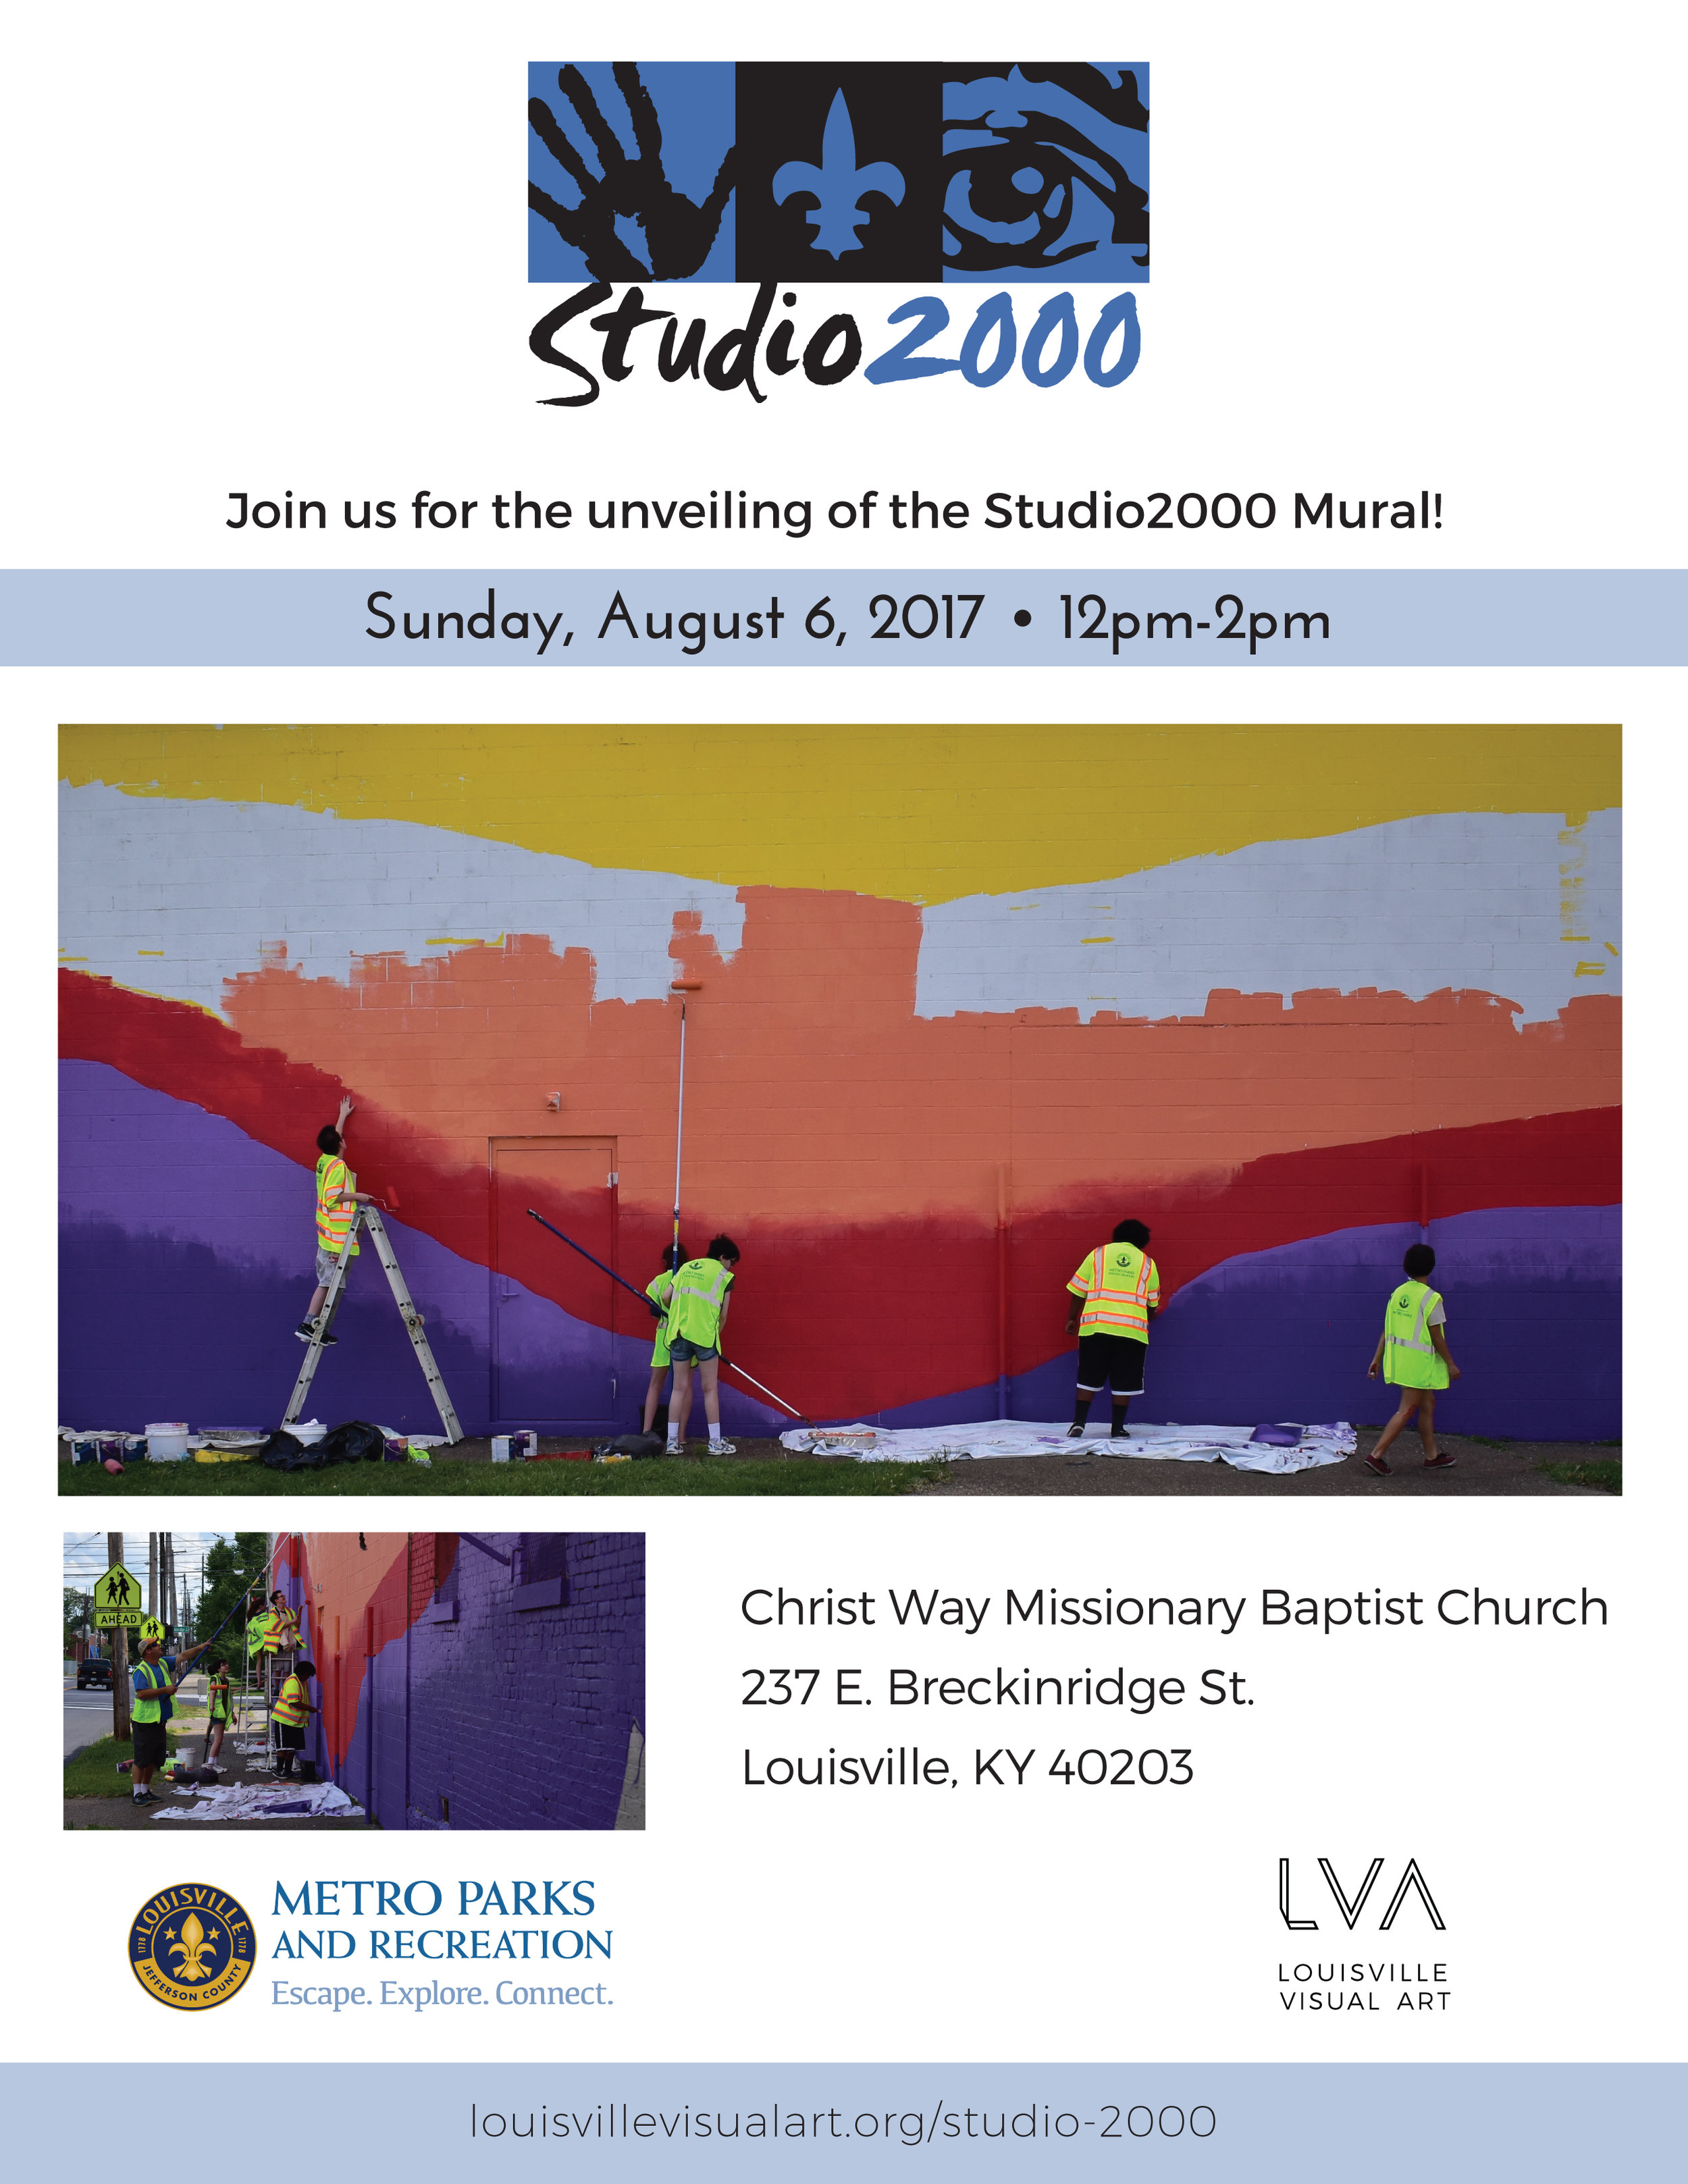 """Sunday is our Studio 2000 mural unveiling!   FRIDAY:  Harlan Strummer Welch-Scarboro shares """"Re-Animations"""" at Craft Gallery   It's PYRO Gallery's last show on East Market Street...   """"First Look / Last Look"""" cuts up at Regalo   SATURDAY:  Our neighbors at 1619 Flux invite you to """"Meet Your Neighbors: Feminine and LGBTQ Perspectives"""""""